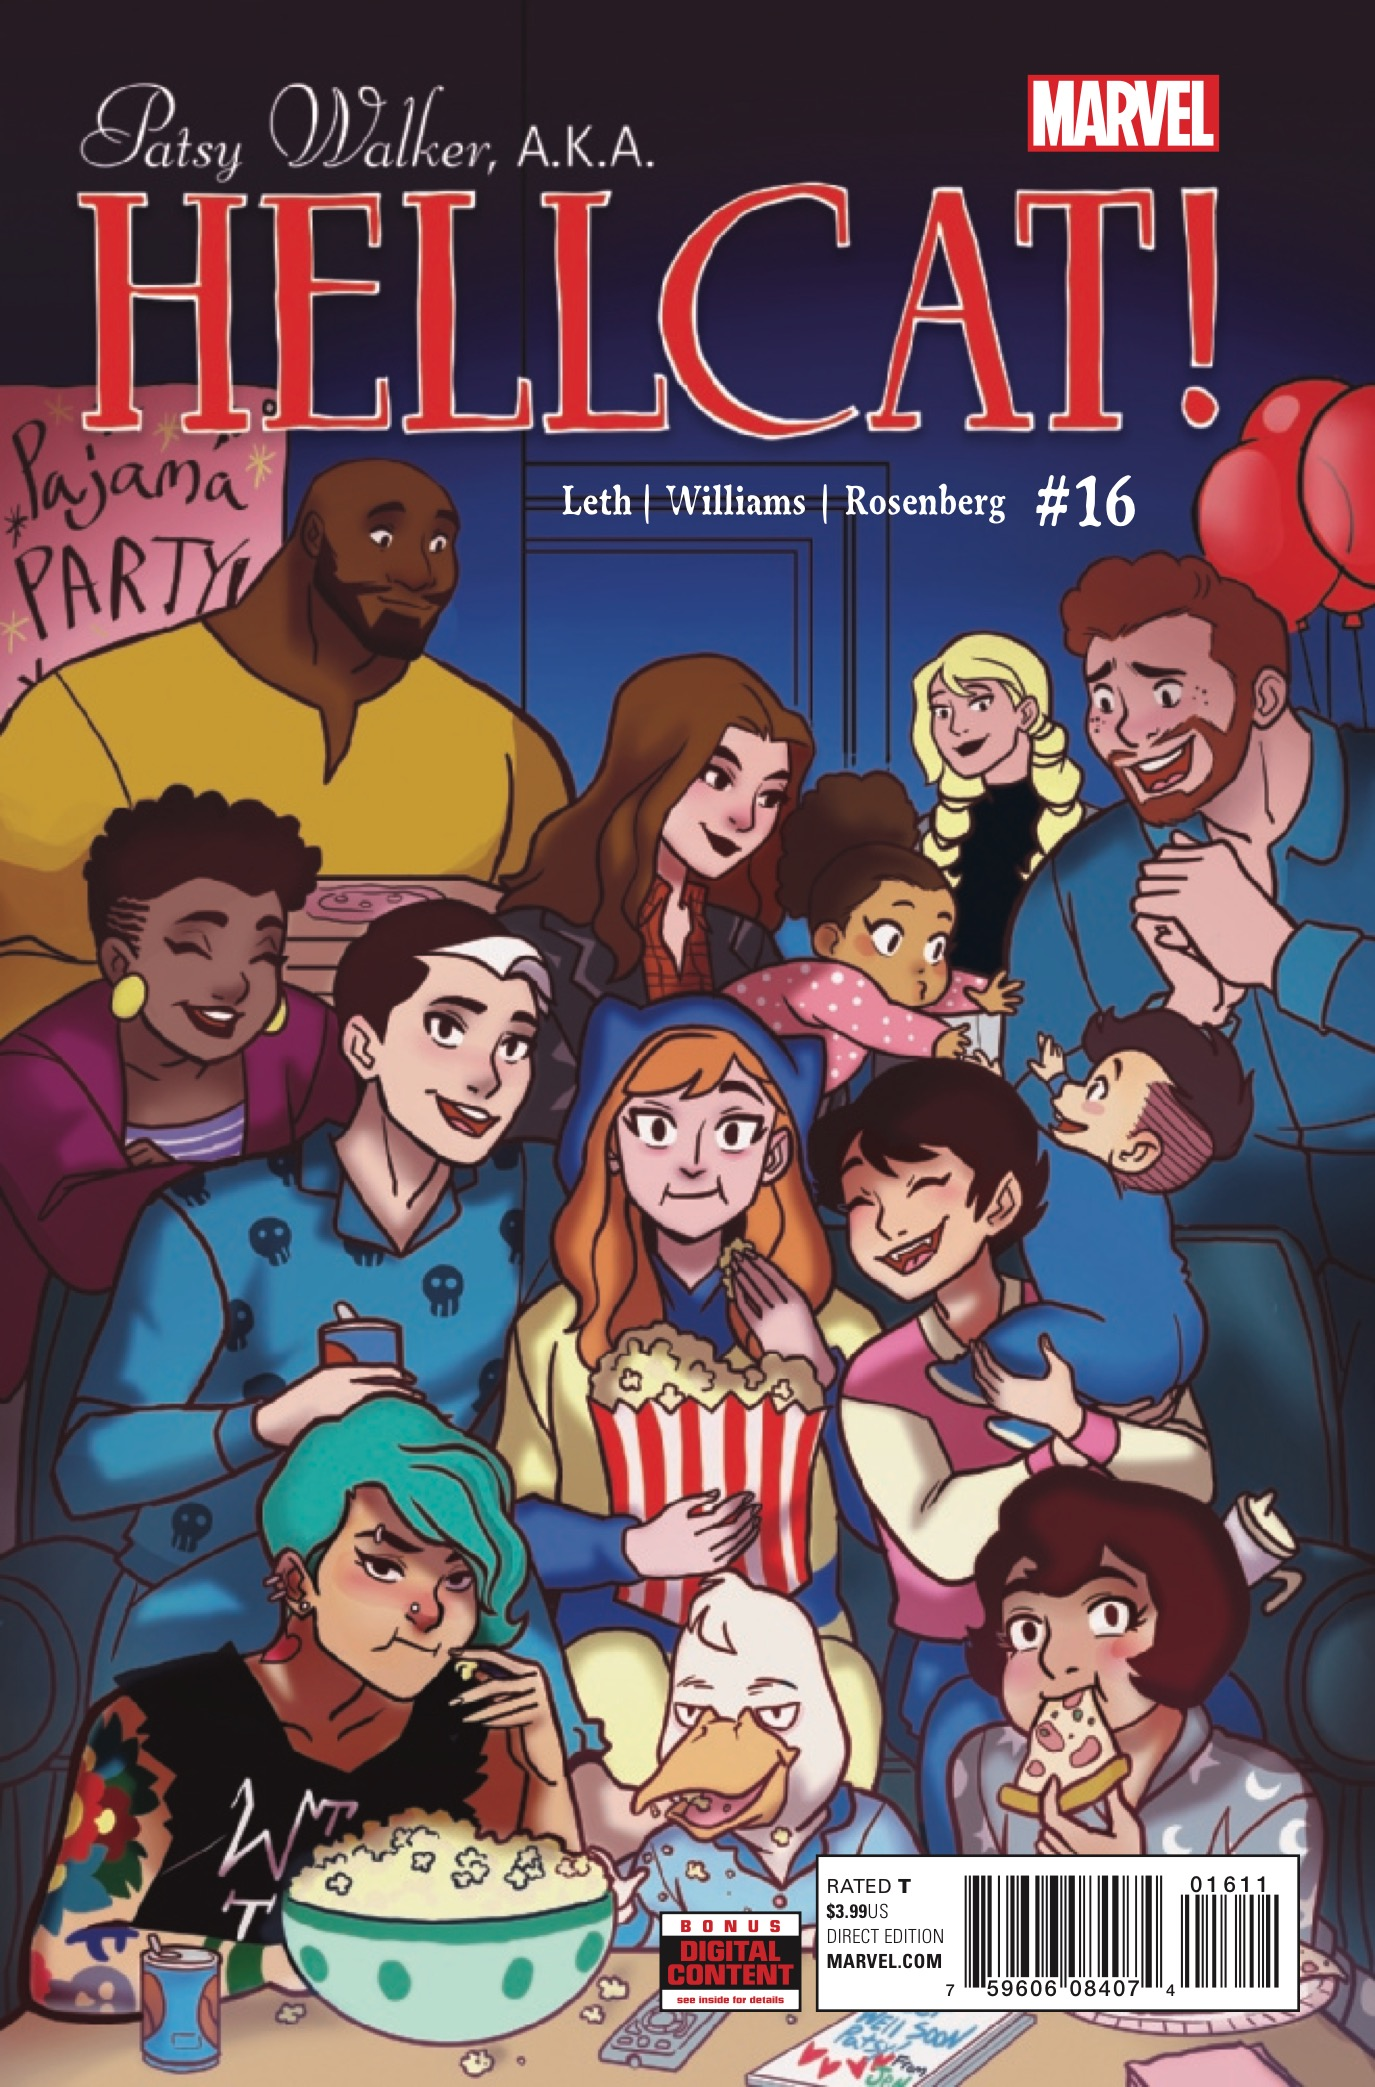 Marvel Preview: Patsy Walker, A.K.A. Hellcat! #16